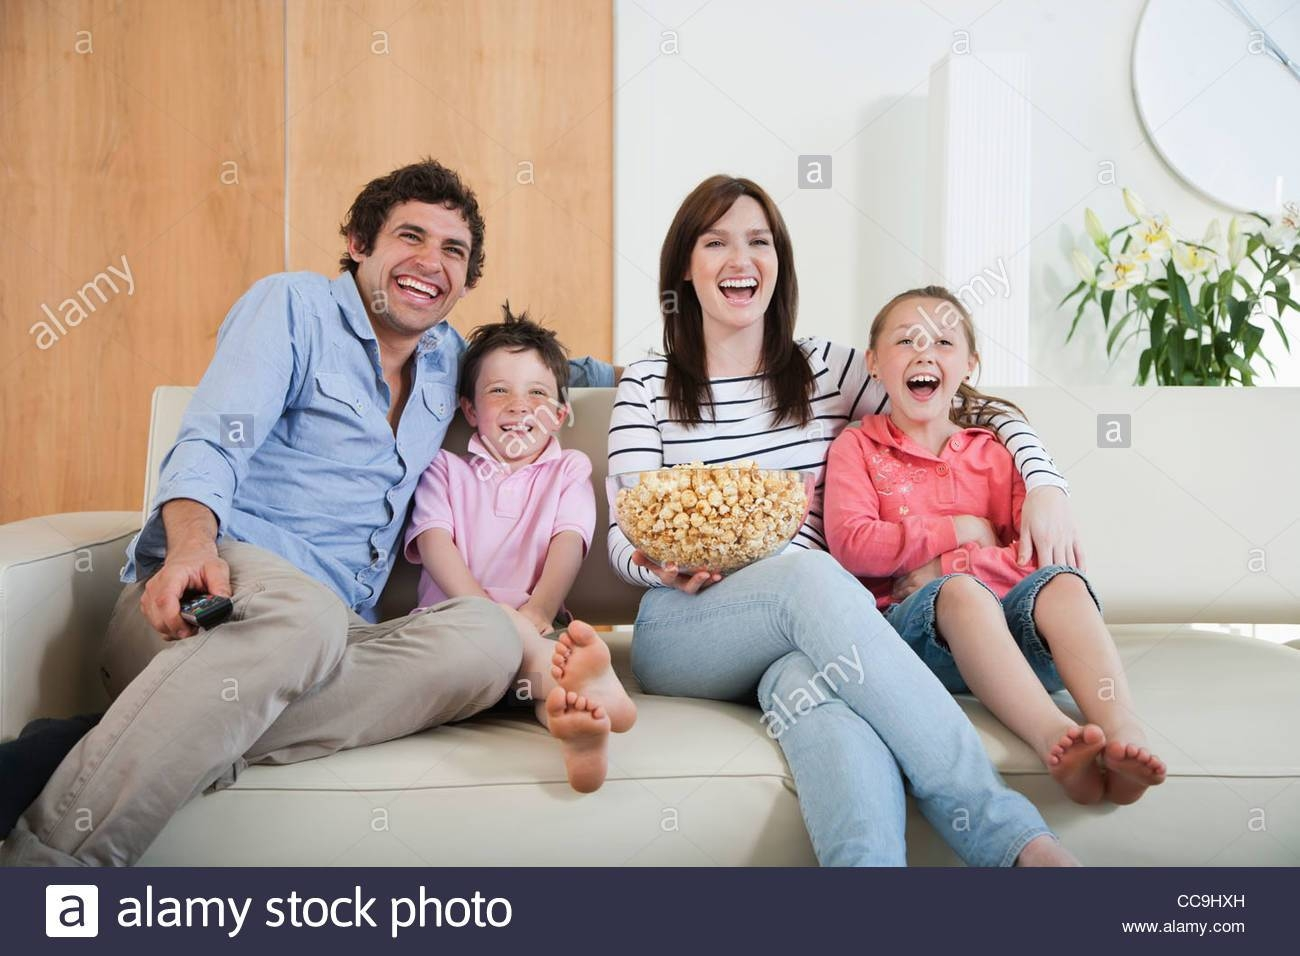 Laughing Family Watching Tv On Sofa Stock Photo, Royalty Free with regard to Family Sofa (Image 28 of 30)